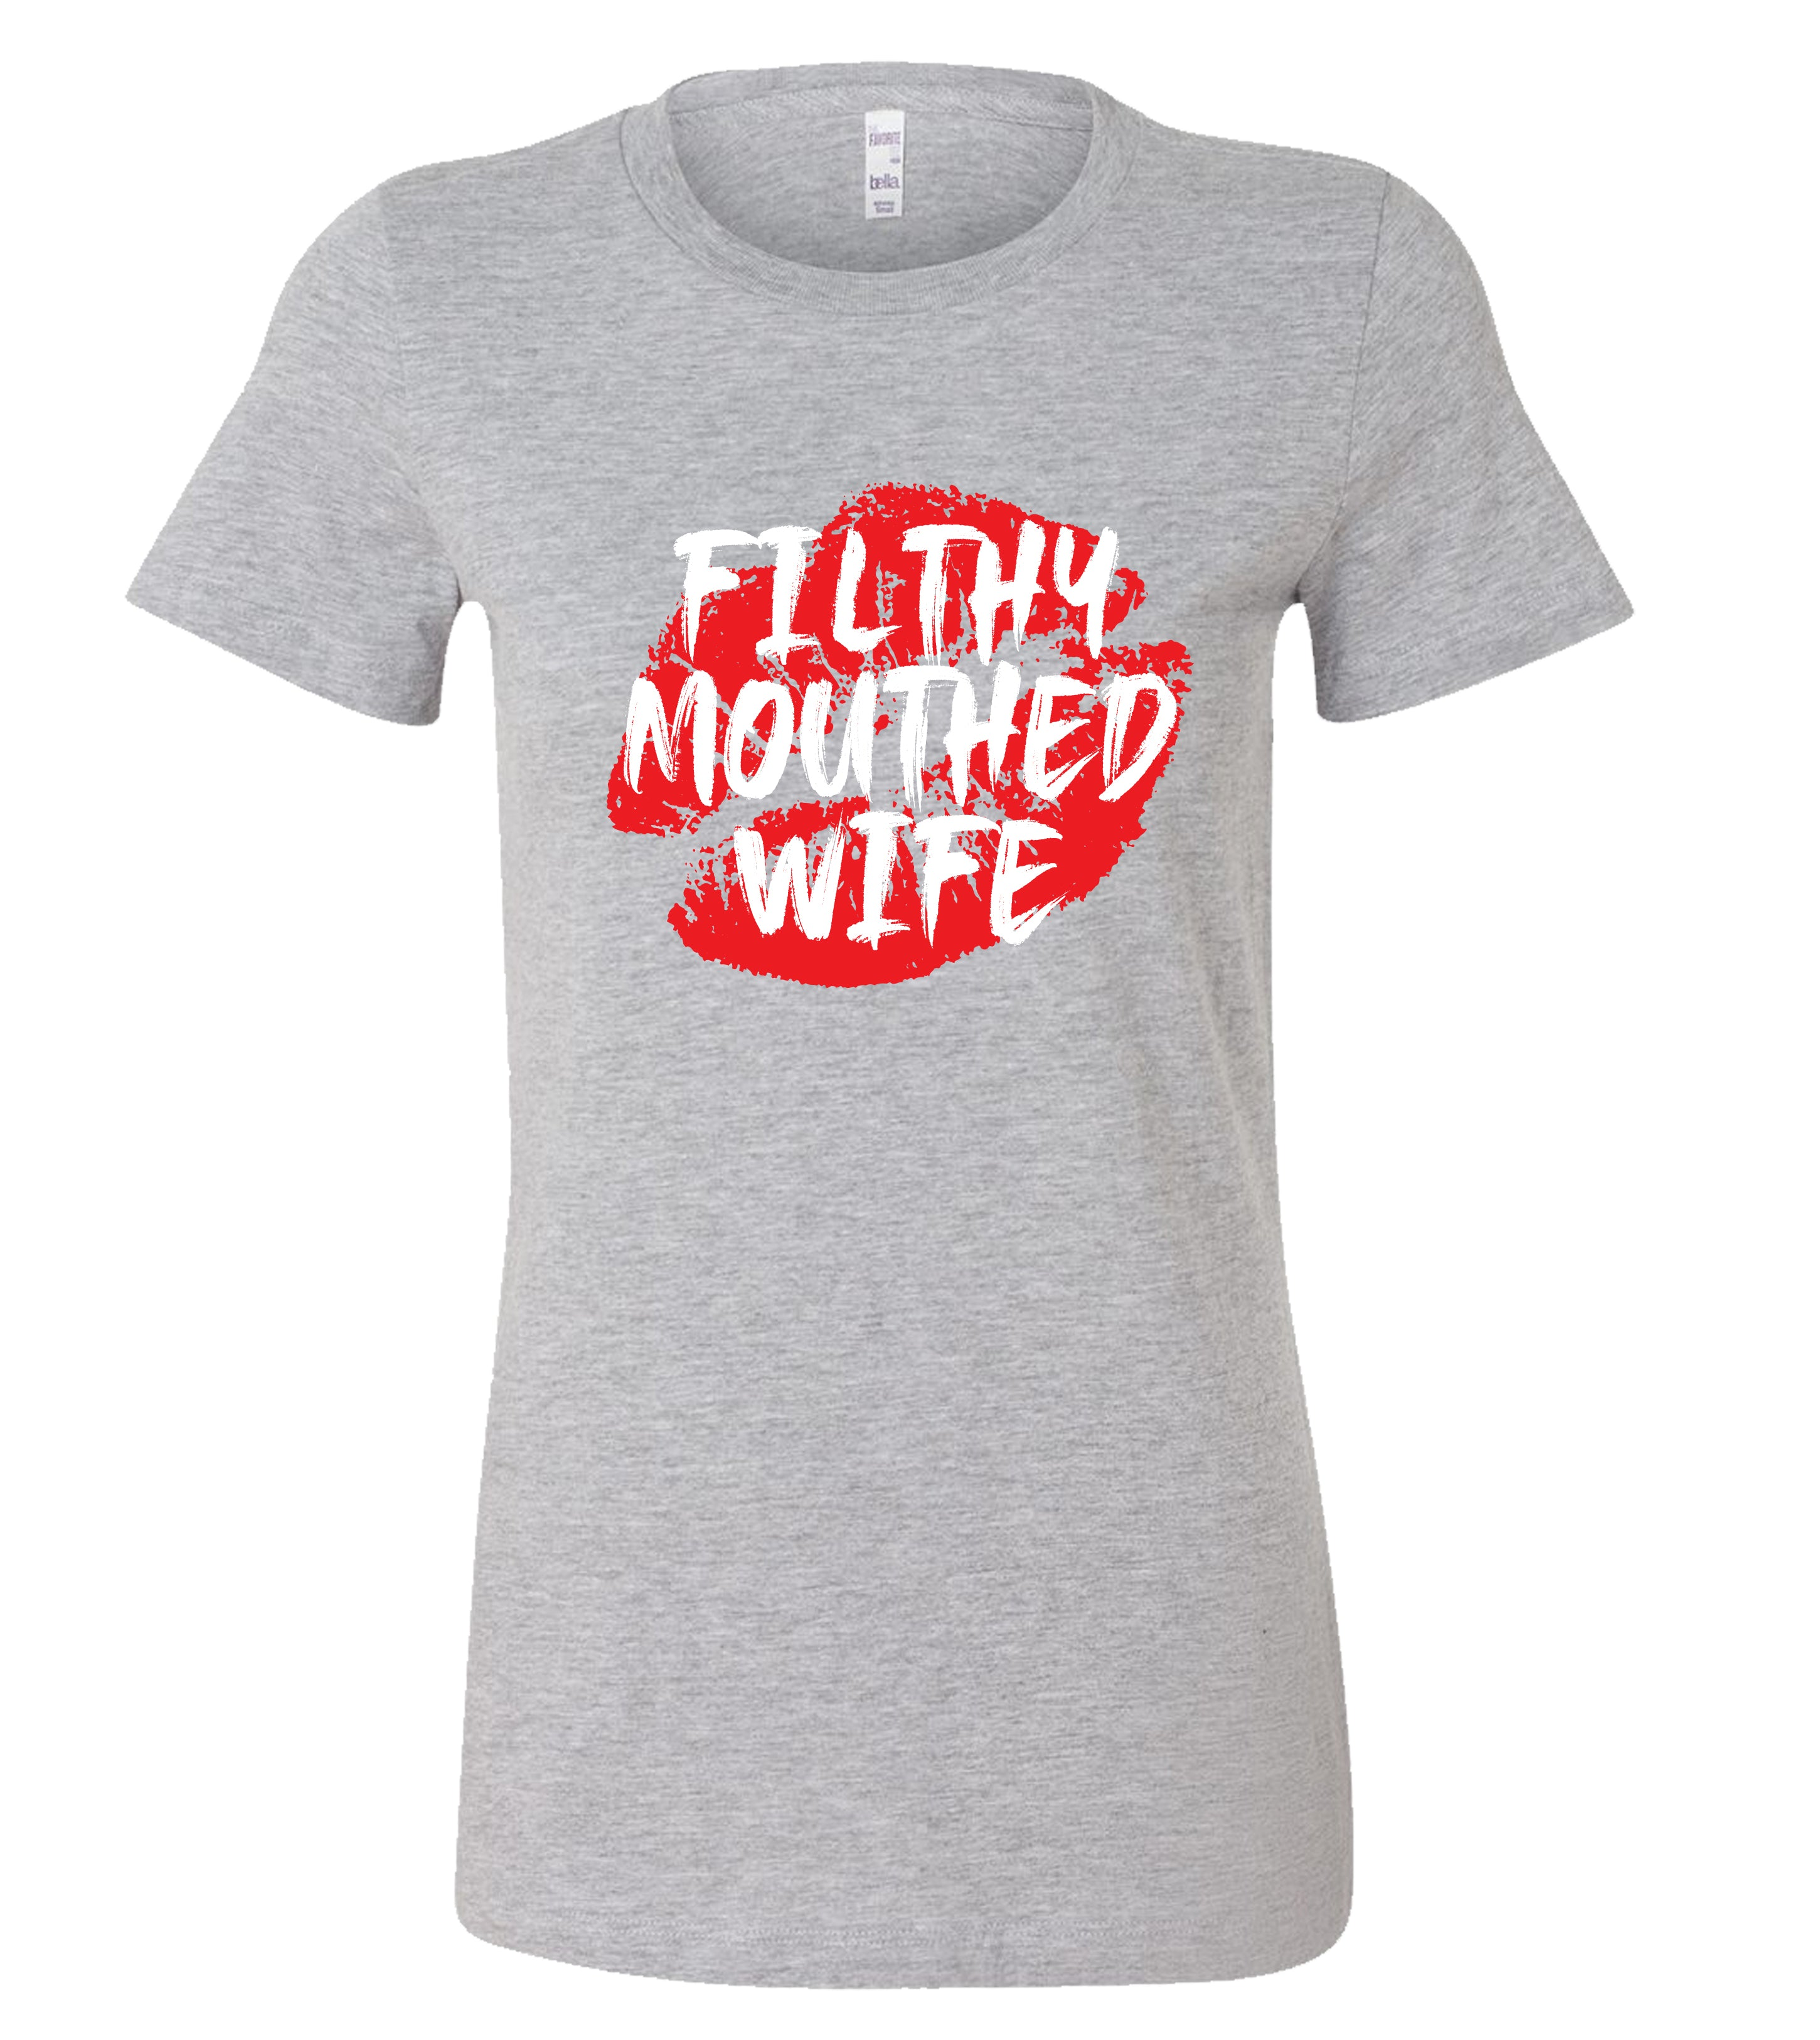 Womens Filthy Mouthed Wife Lipstick Smudge Graphic T-Shirt